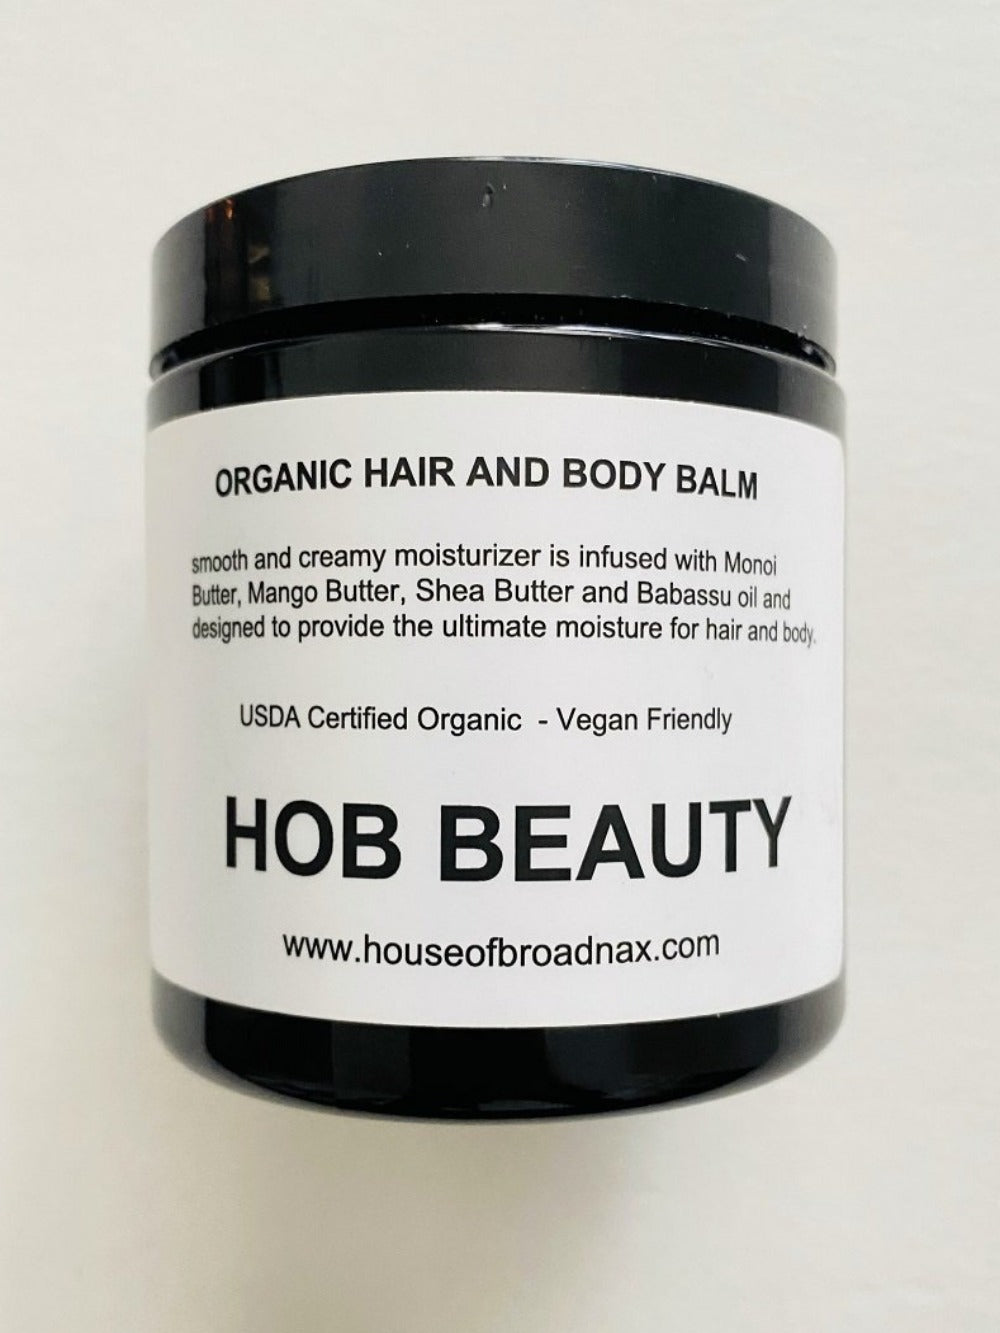 HOB BEAUTY ORGANIC HAIR & BODY BALM - HOB BRAND